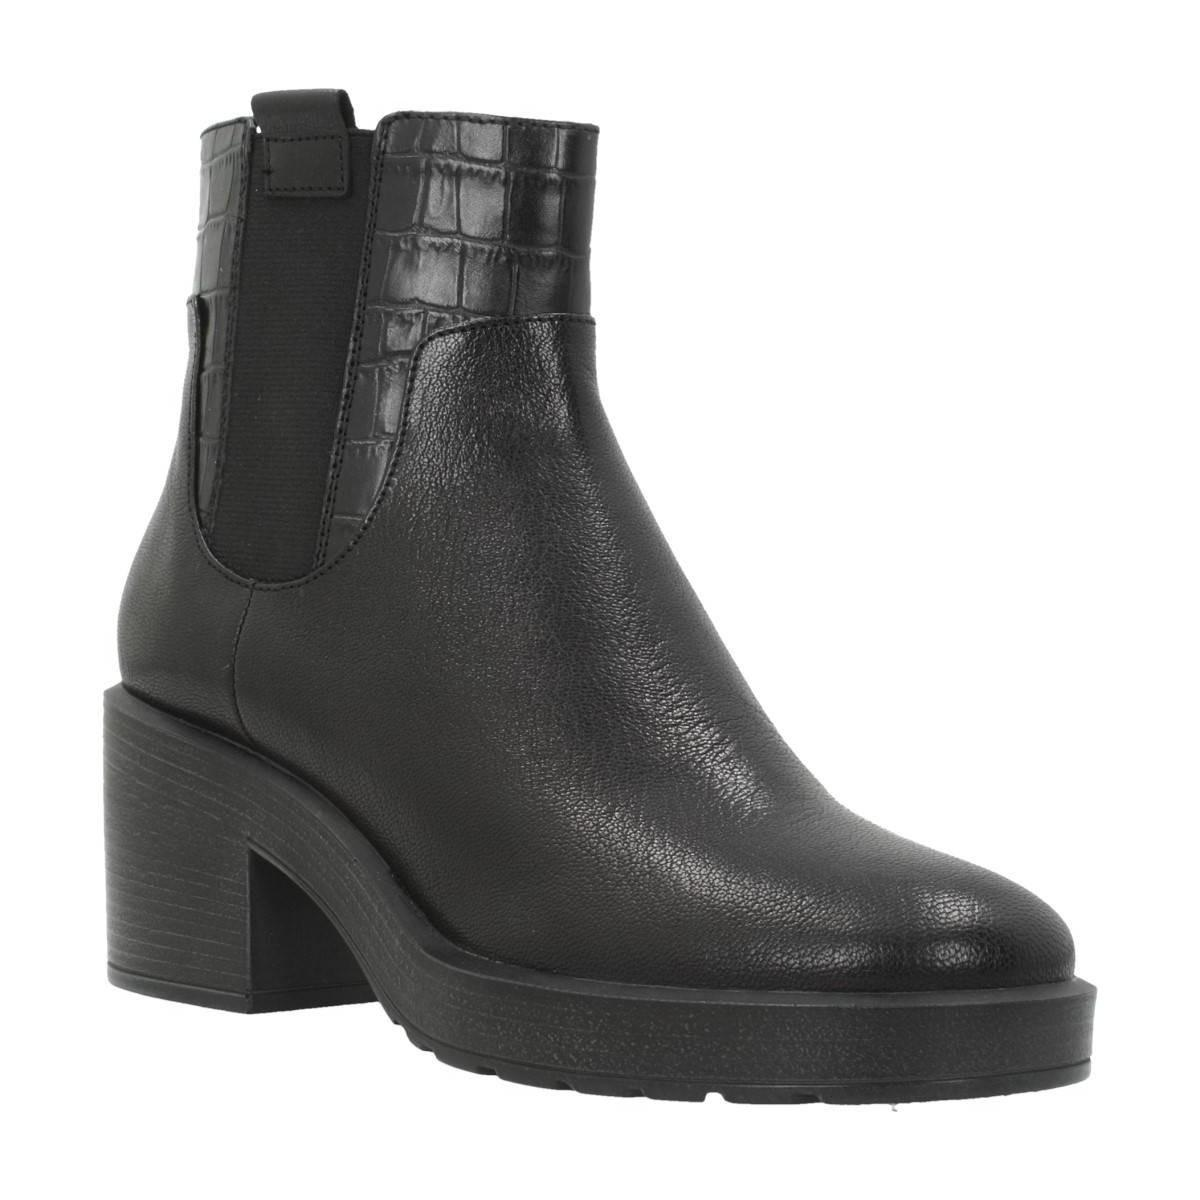 Geox D Kenly Mid A Women s Low Ankle Boots In Black in Black - Lyst 91f64e6bba6